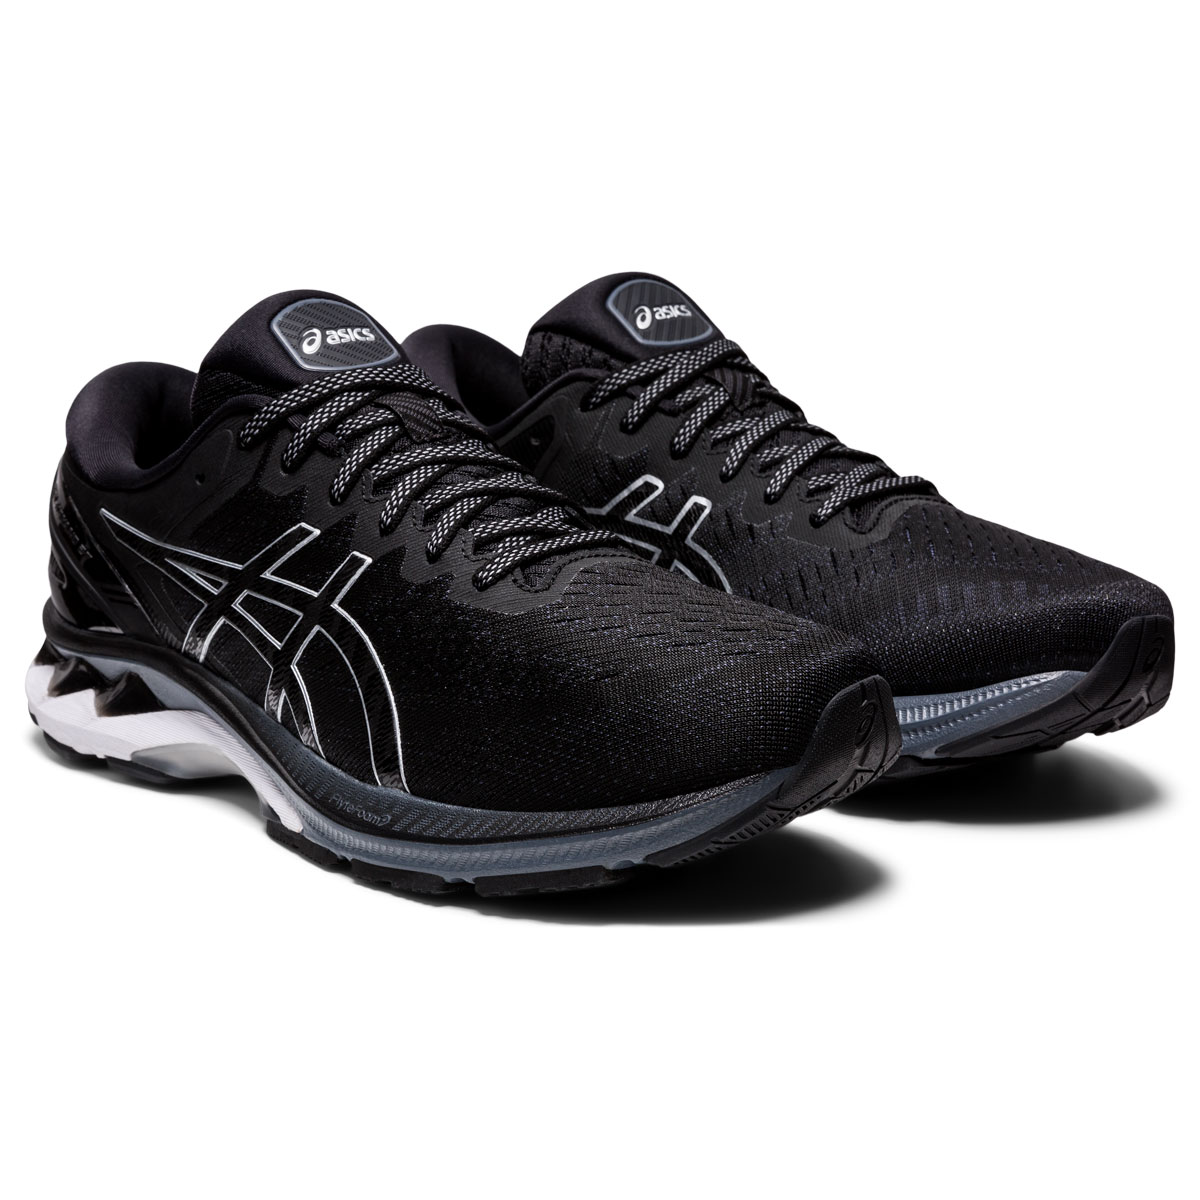 Men's Asics GEL-Kayano 27 Running Shoe - Color: Black/Pure Silv (Regular Width) - Size: 6, Black/Pure Silver, large, image 3